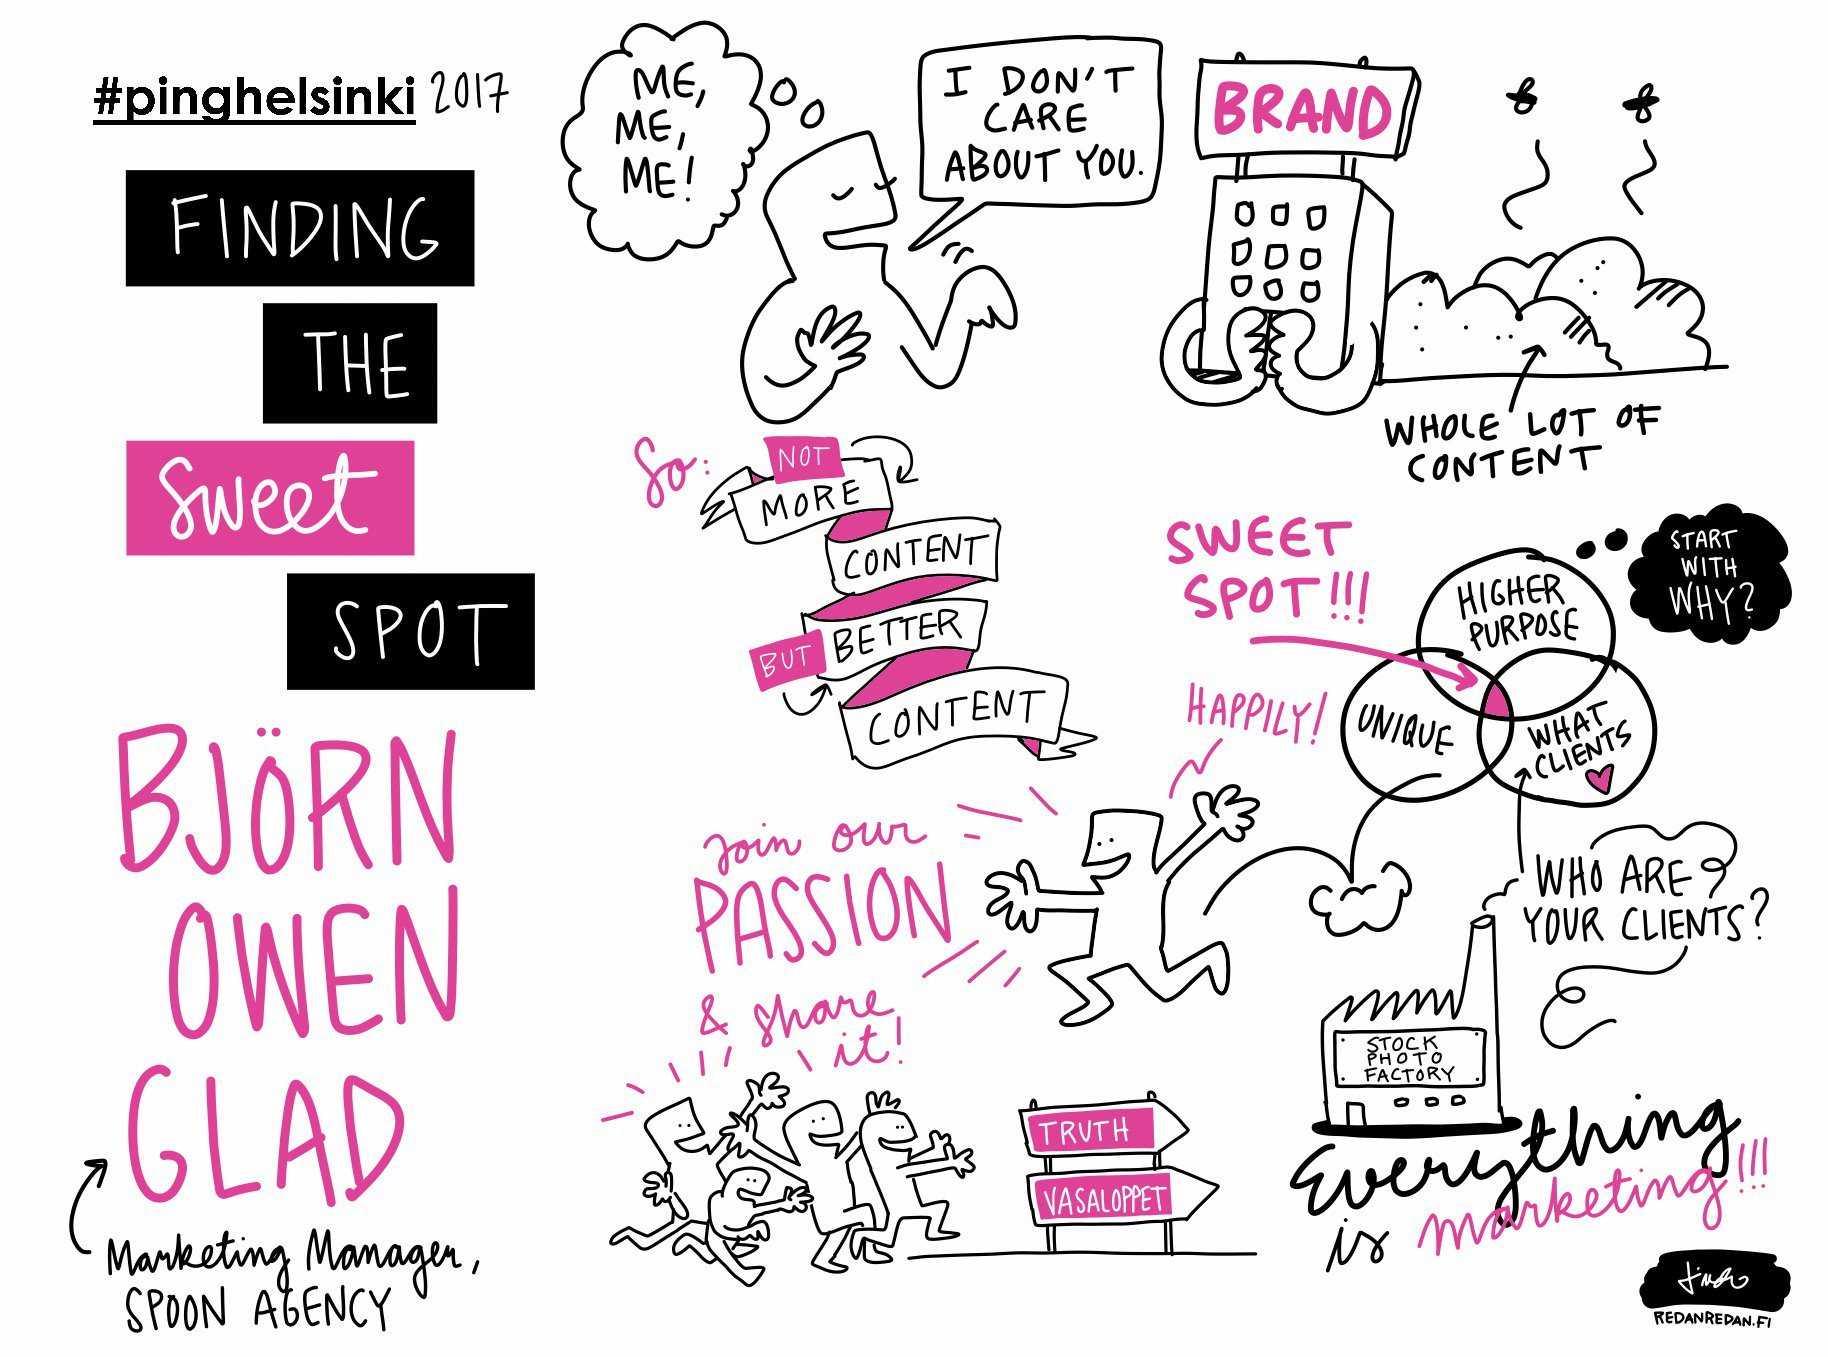 Find the sweet spot with the help of #contentmarketing - @BjornOwenGlad at #Pinghelsinki as sketchnotes. https://t.co/spsMoCh4c8